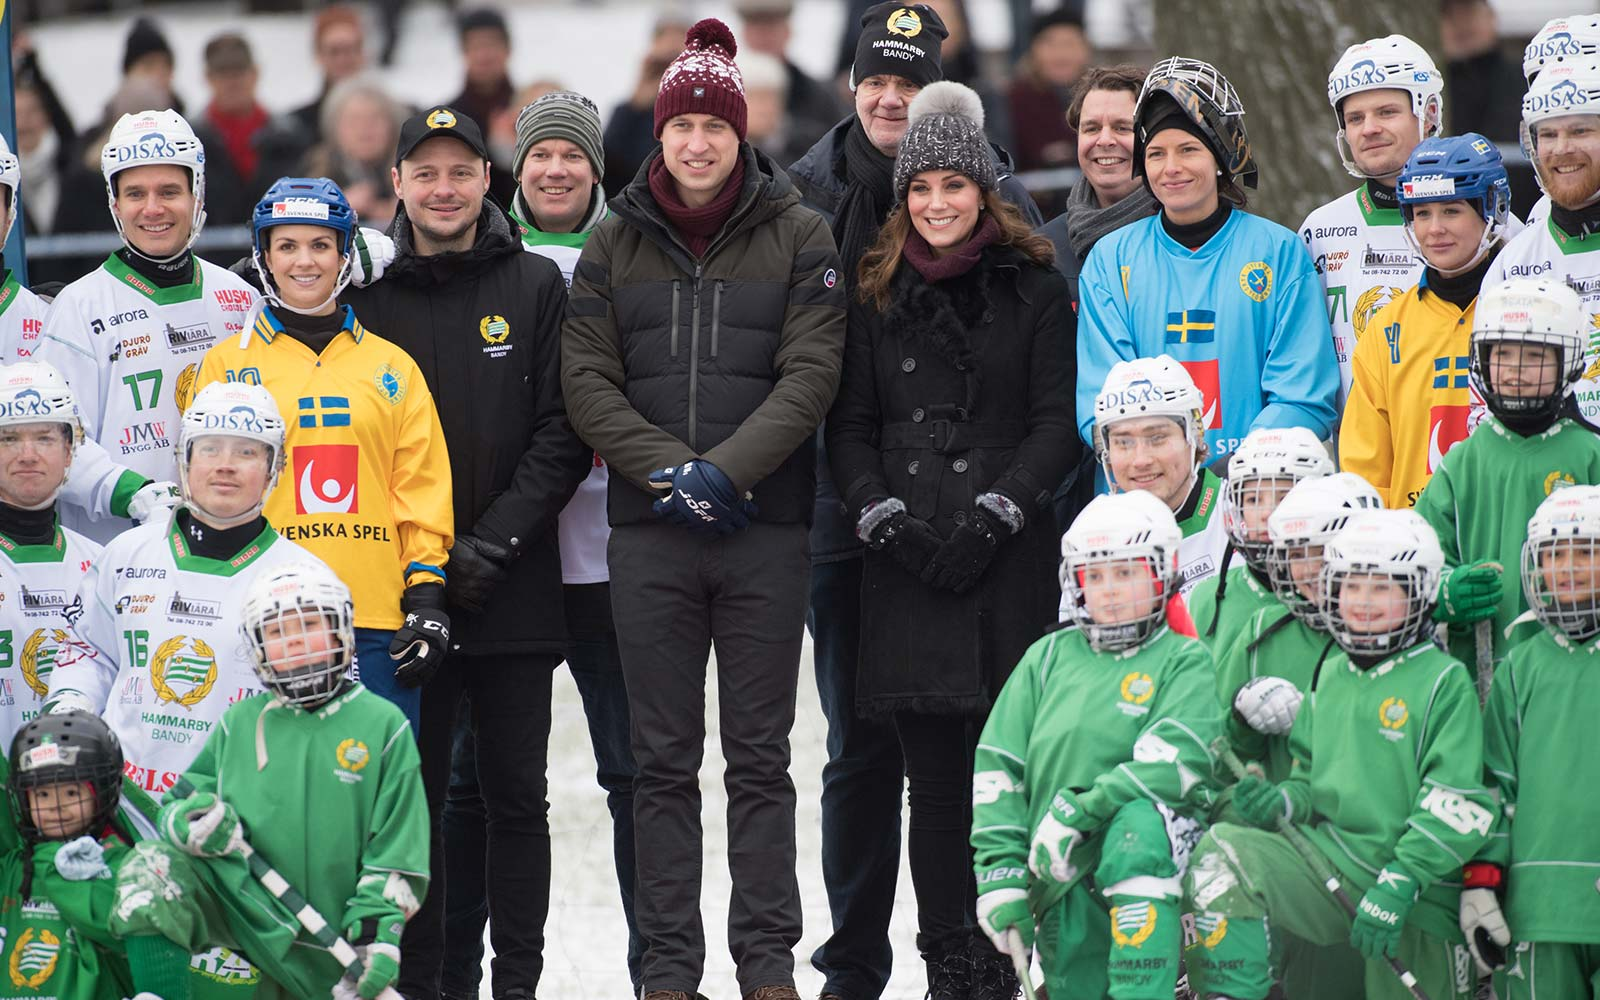 Kate Middleton Prince William Royal Visit Norway Sweden Hockey Game